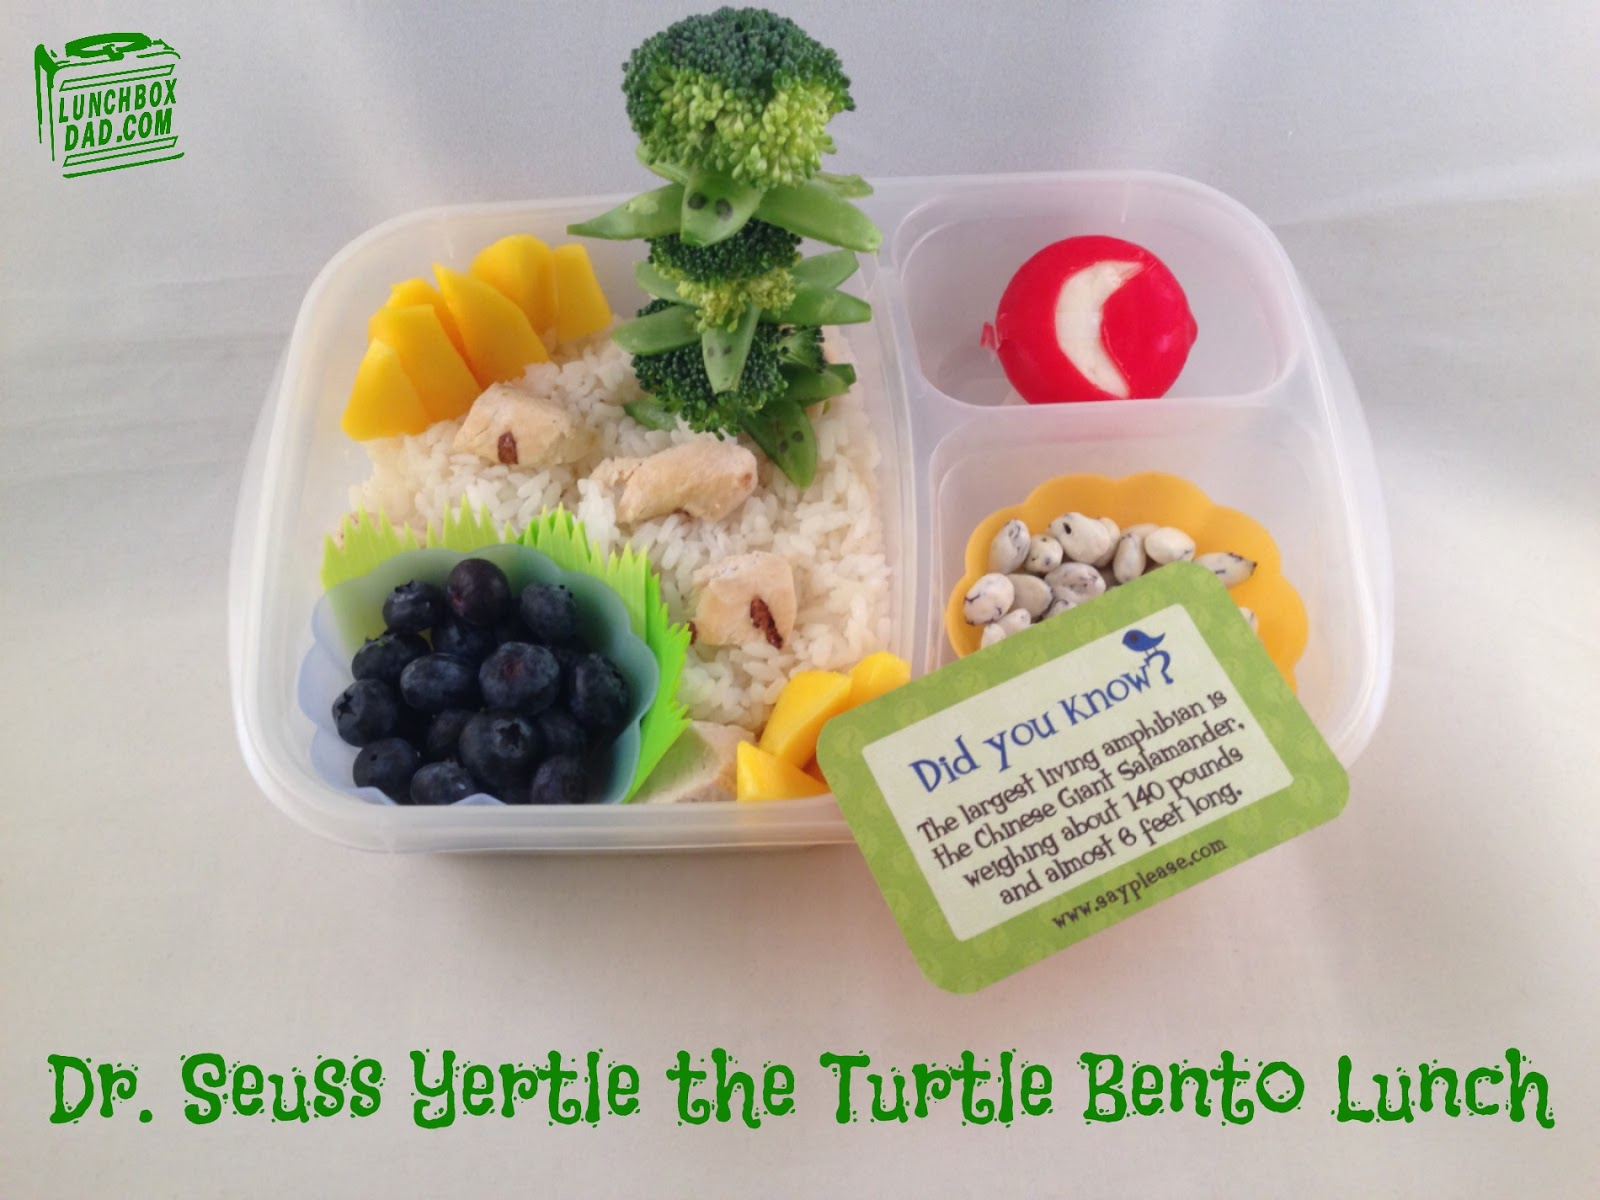 Dr. Seuss Yertle the Turtle bento lunch